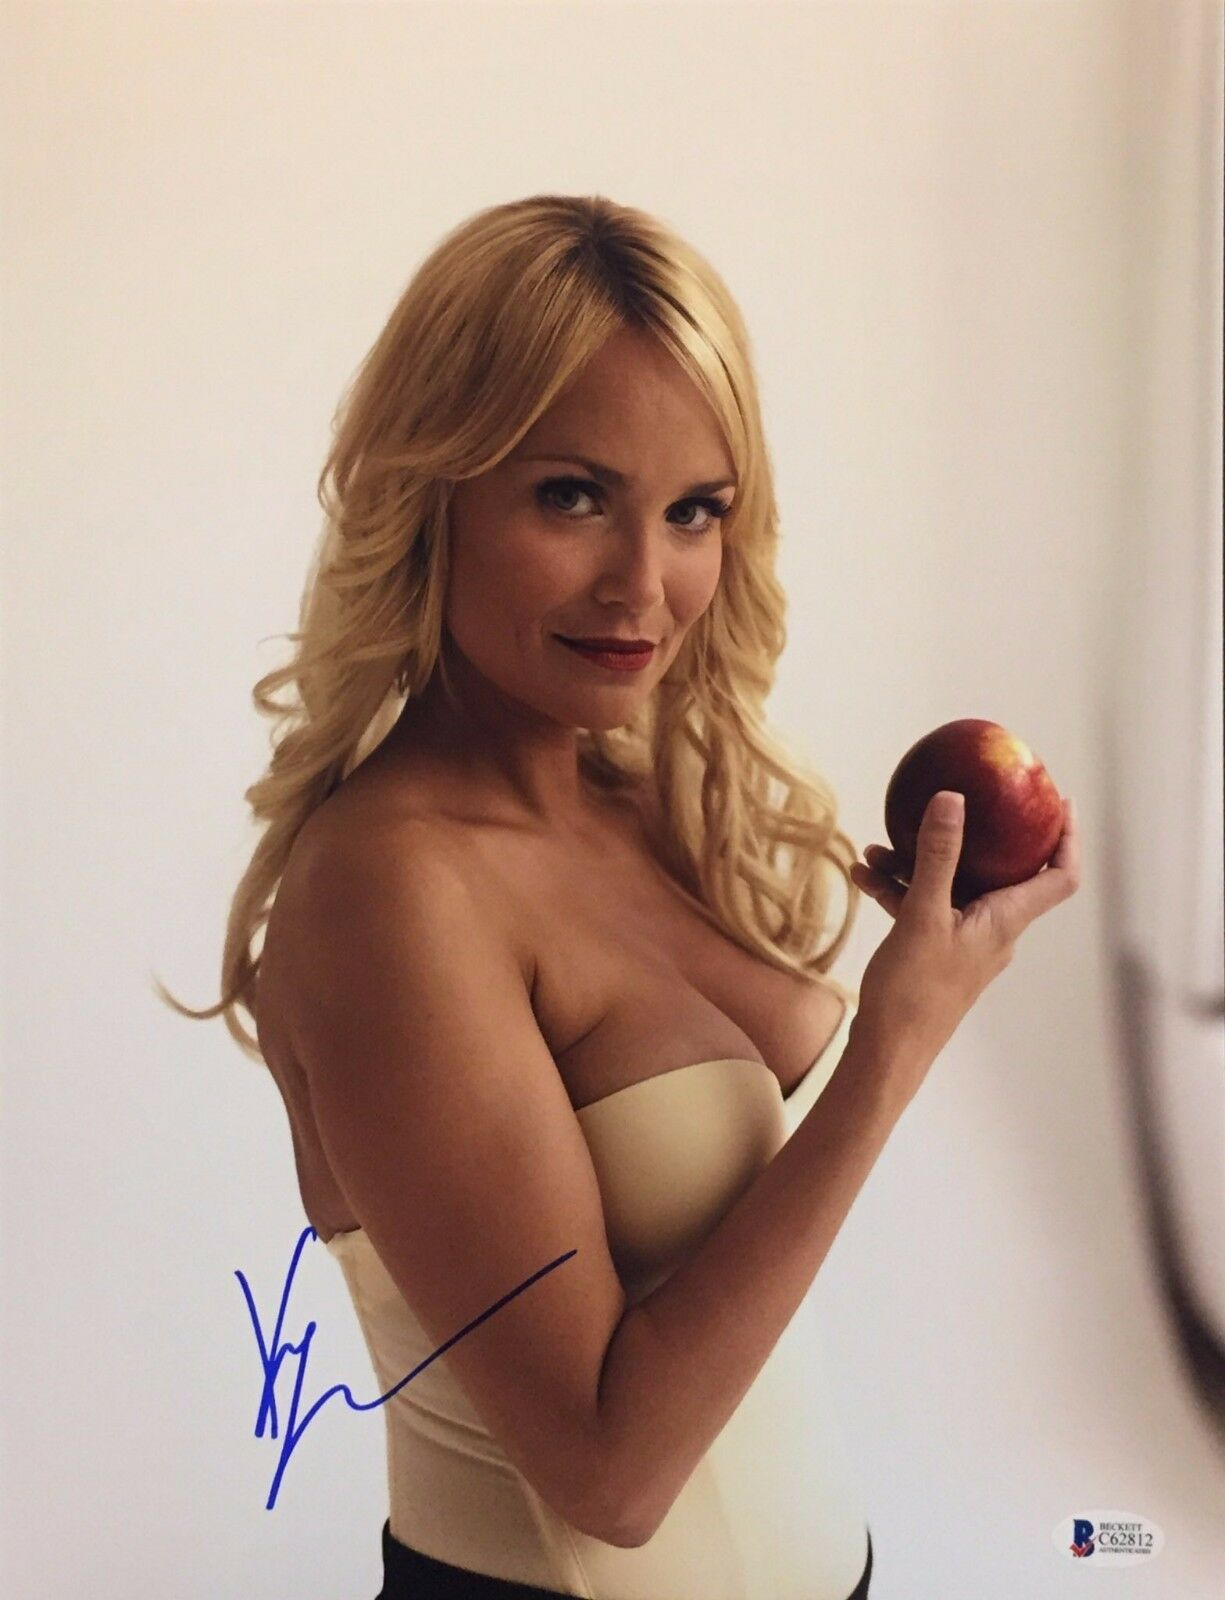 Kristen Chenoweth Signed 11x14 Photo *Model *Bewitched BAS C62812